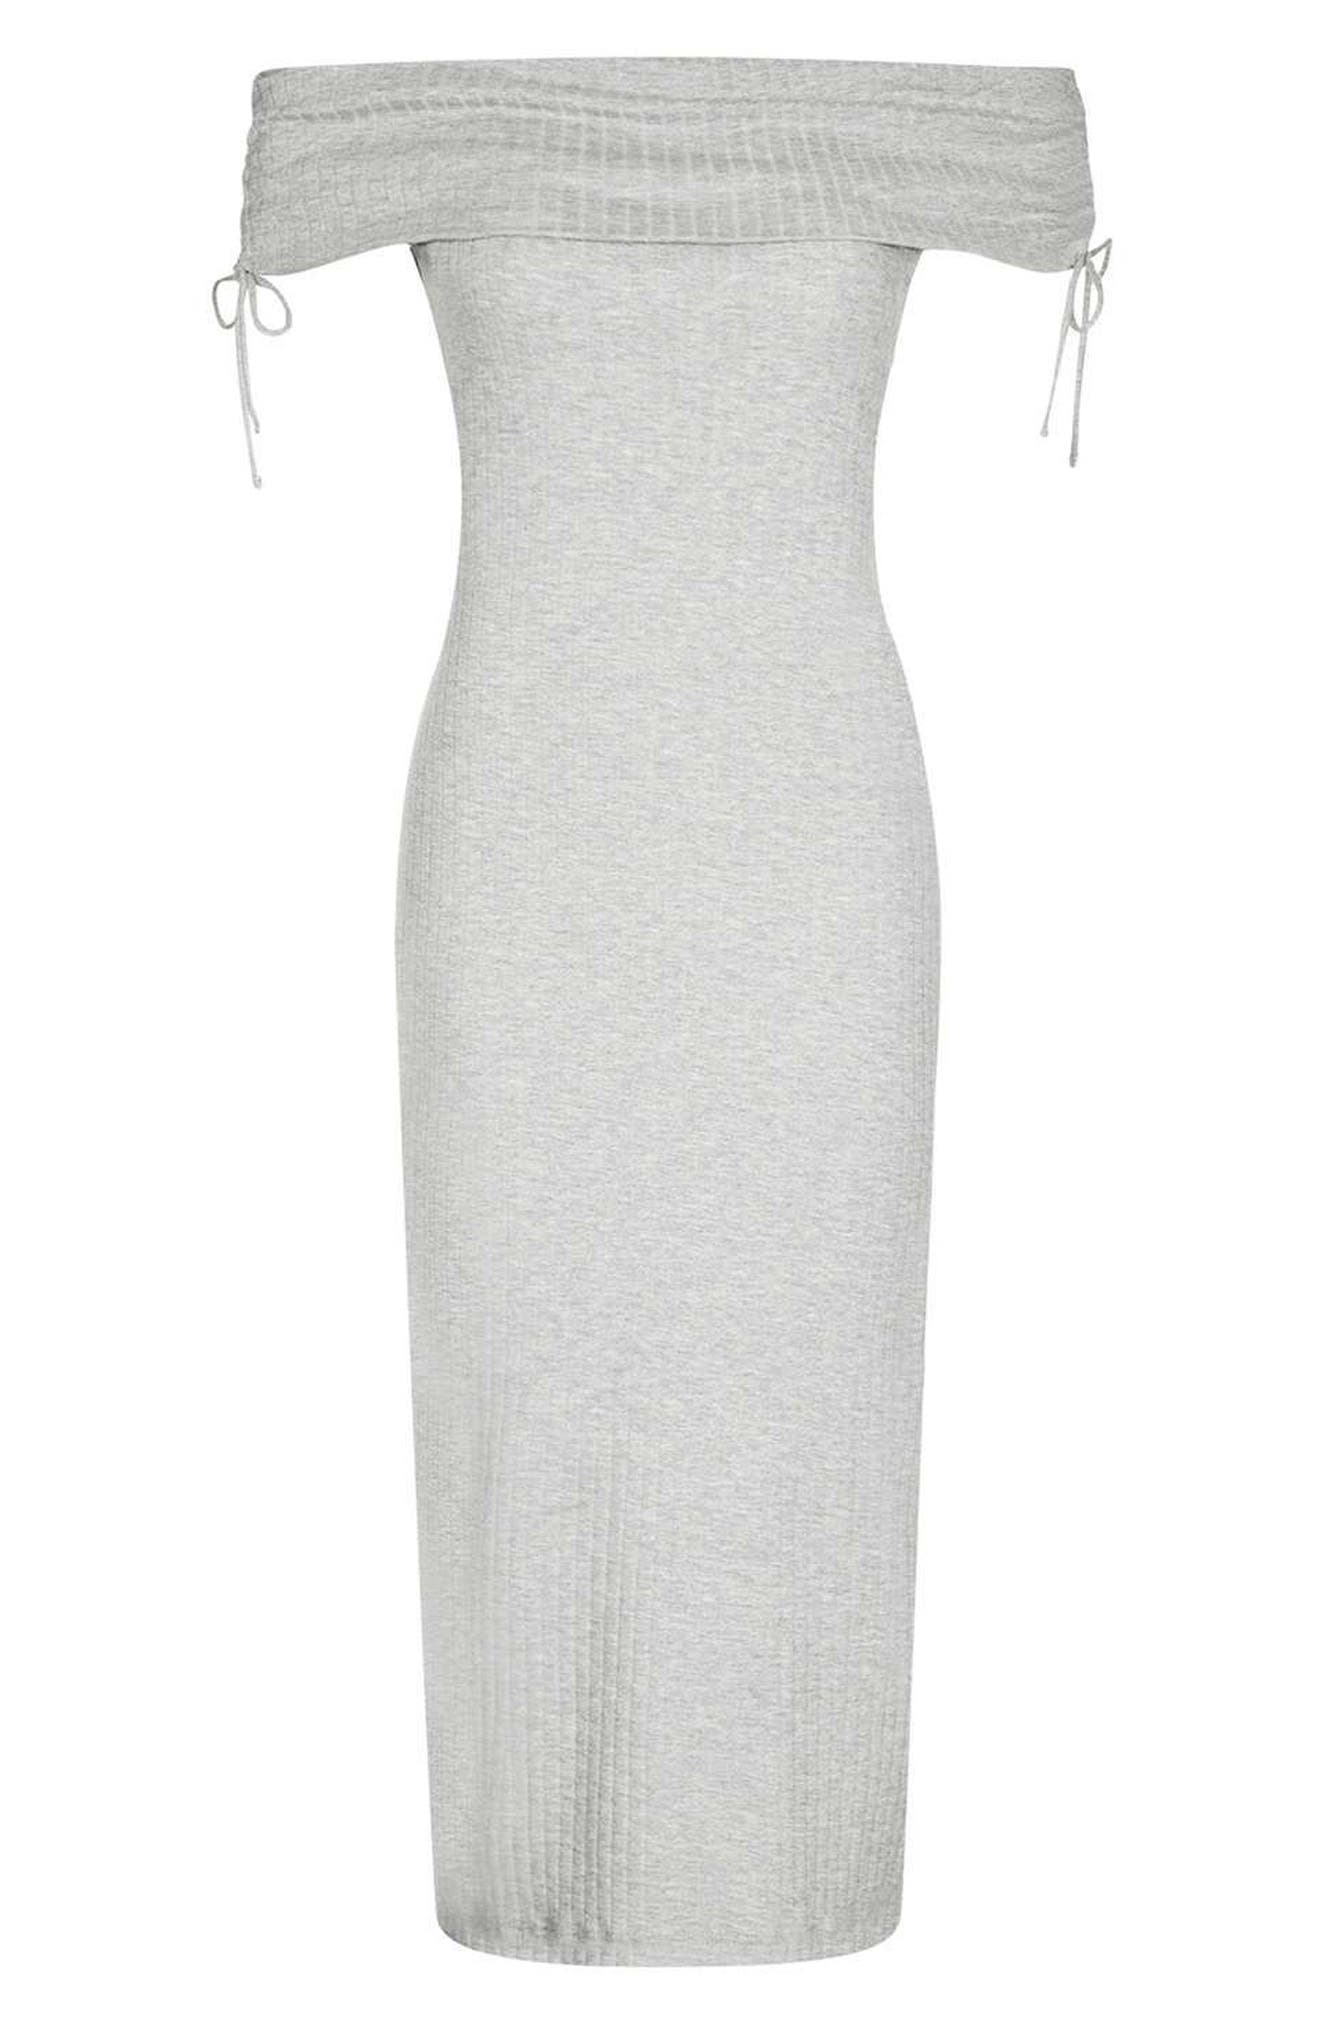 Alternate Image 3  - Topshop Bardot Ribbed Midi Dress